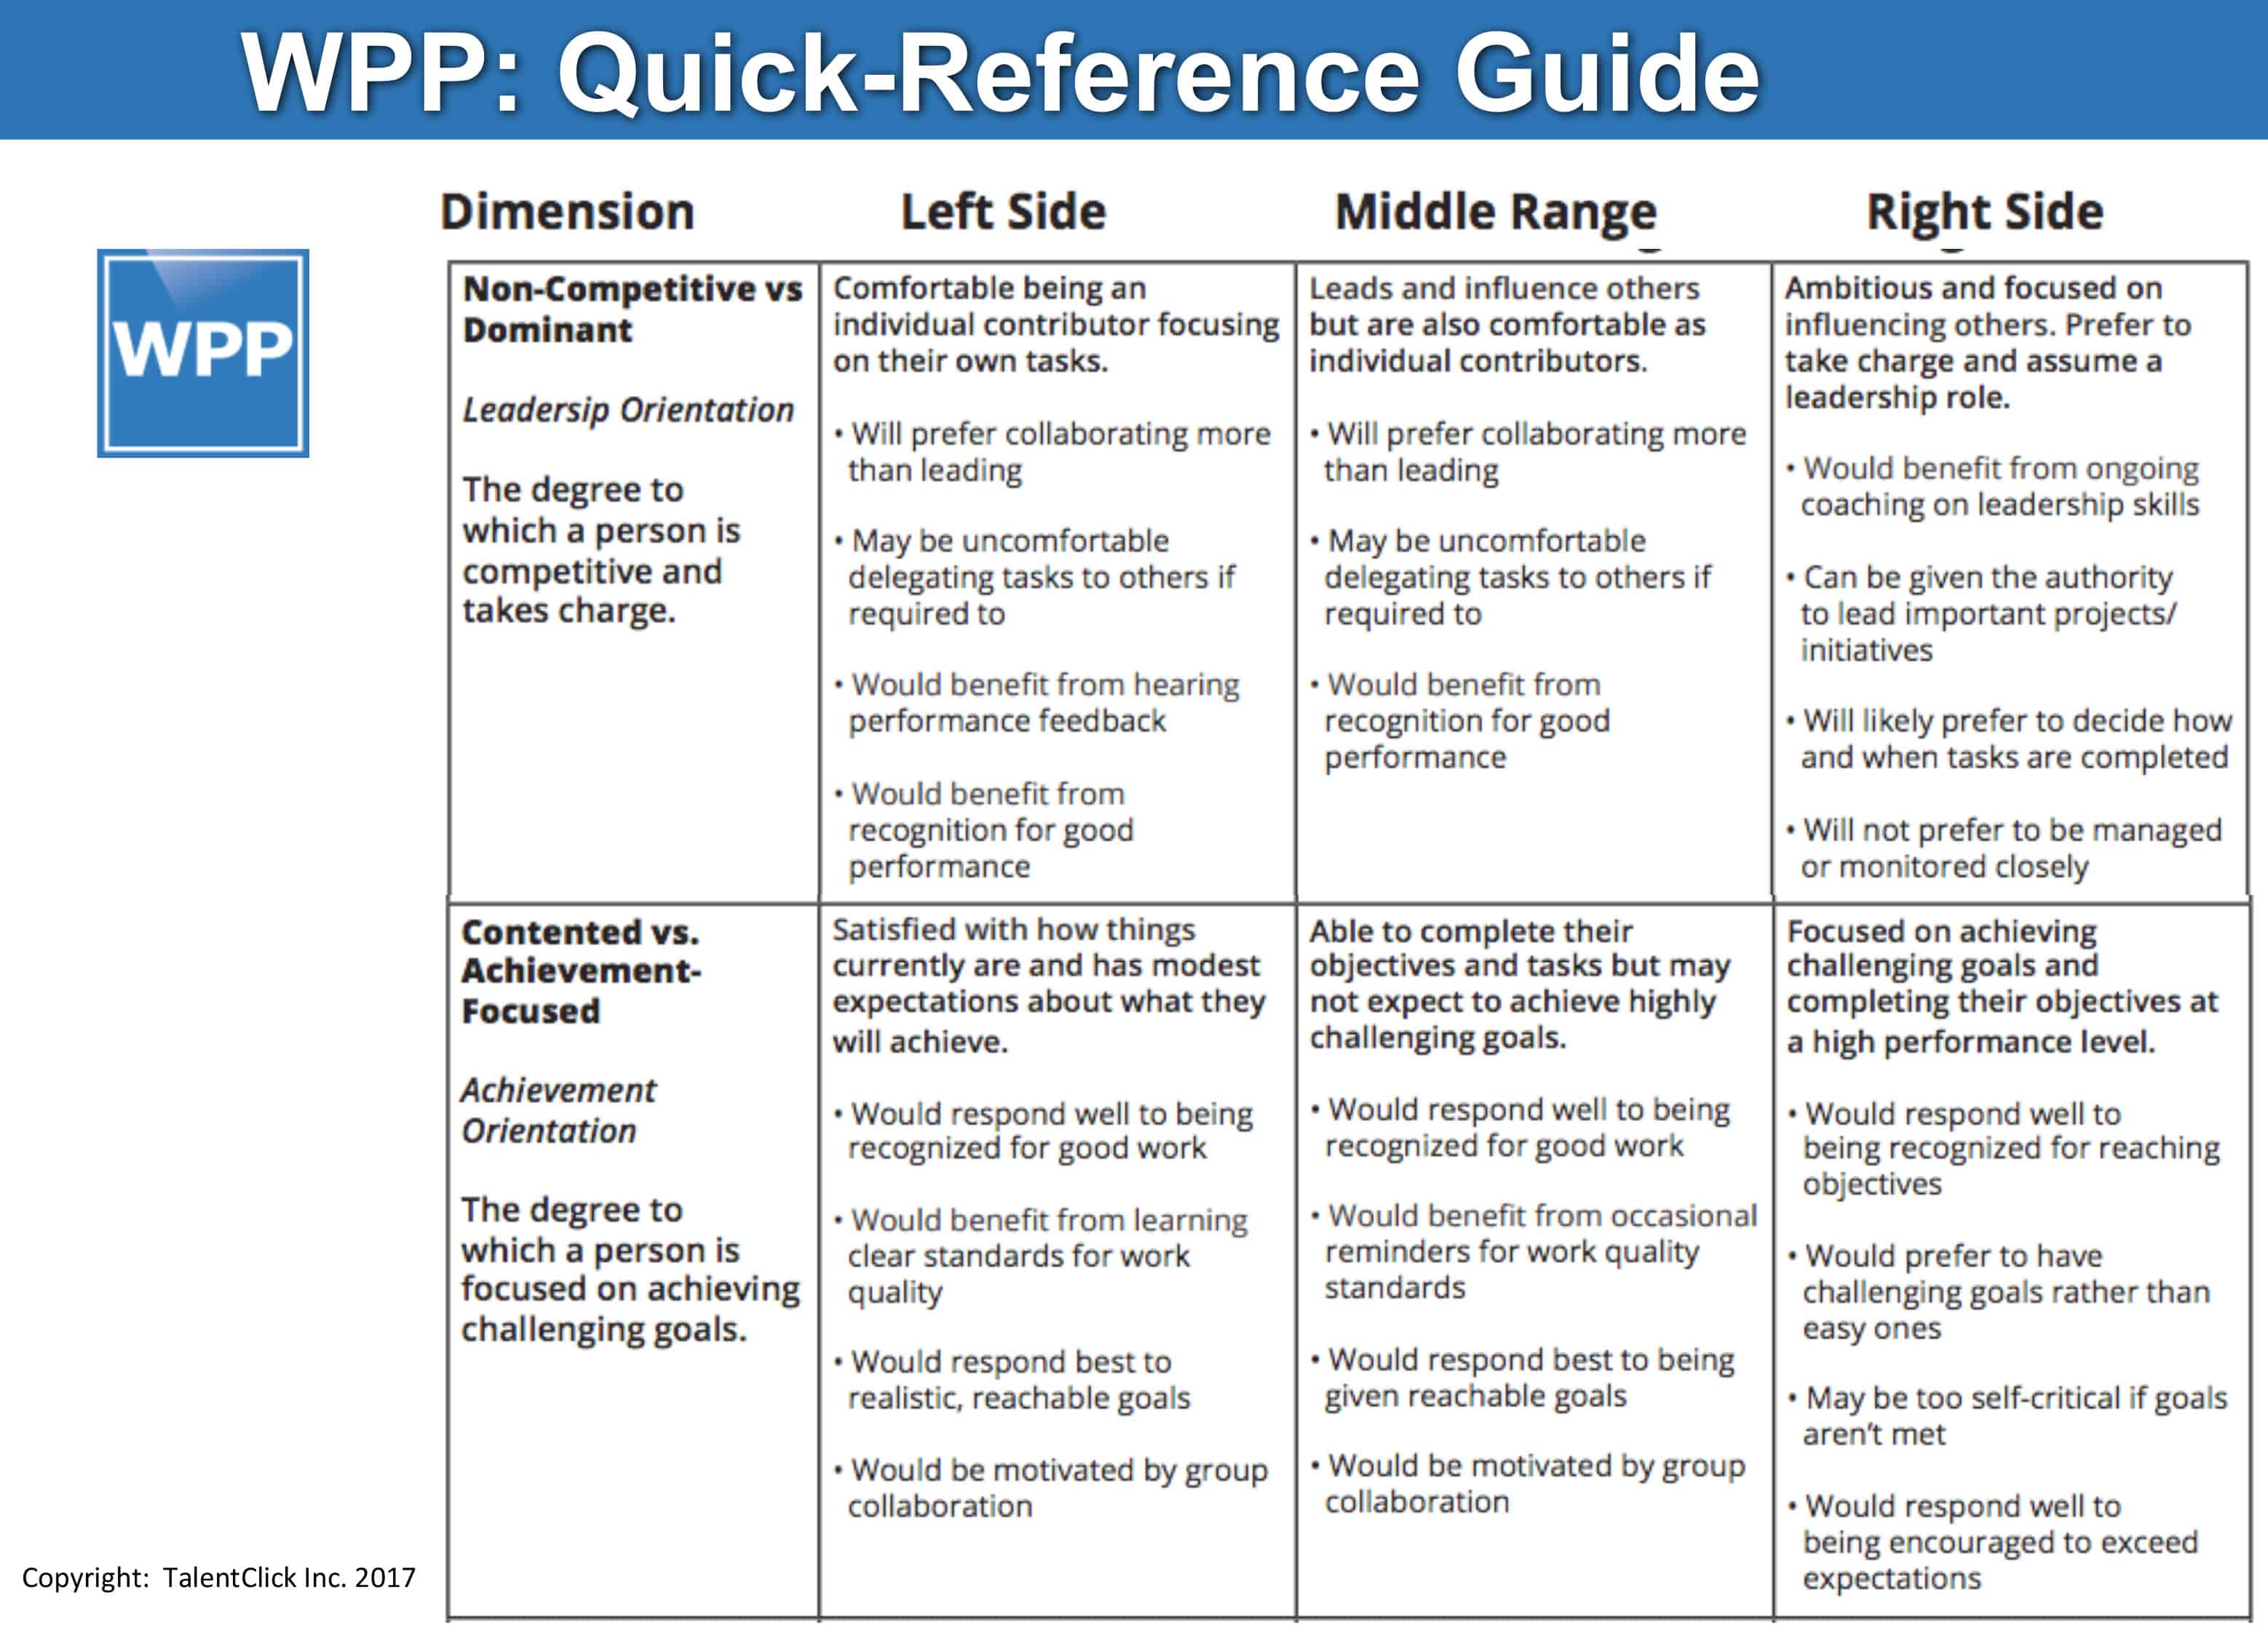 WPP: QUICK-REFERENCE GUIDE